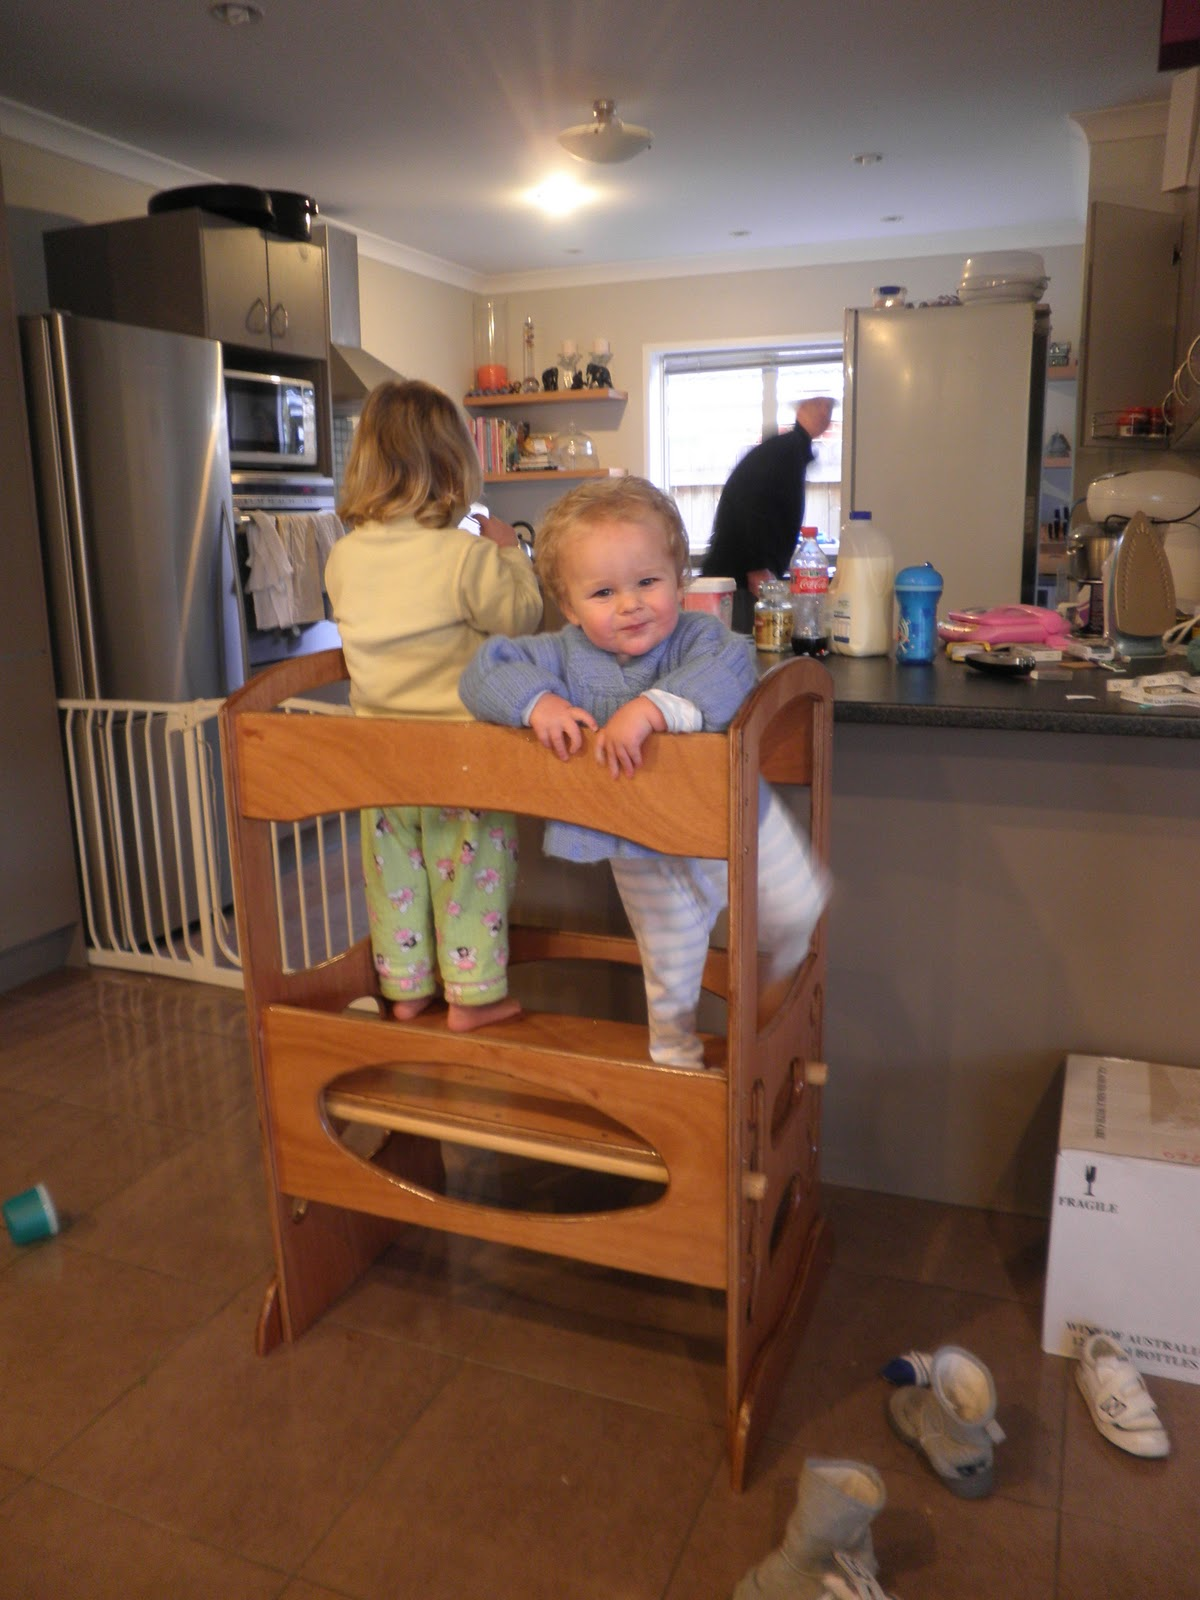 Stool For Toddler In Kitchen